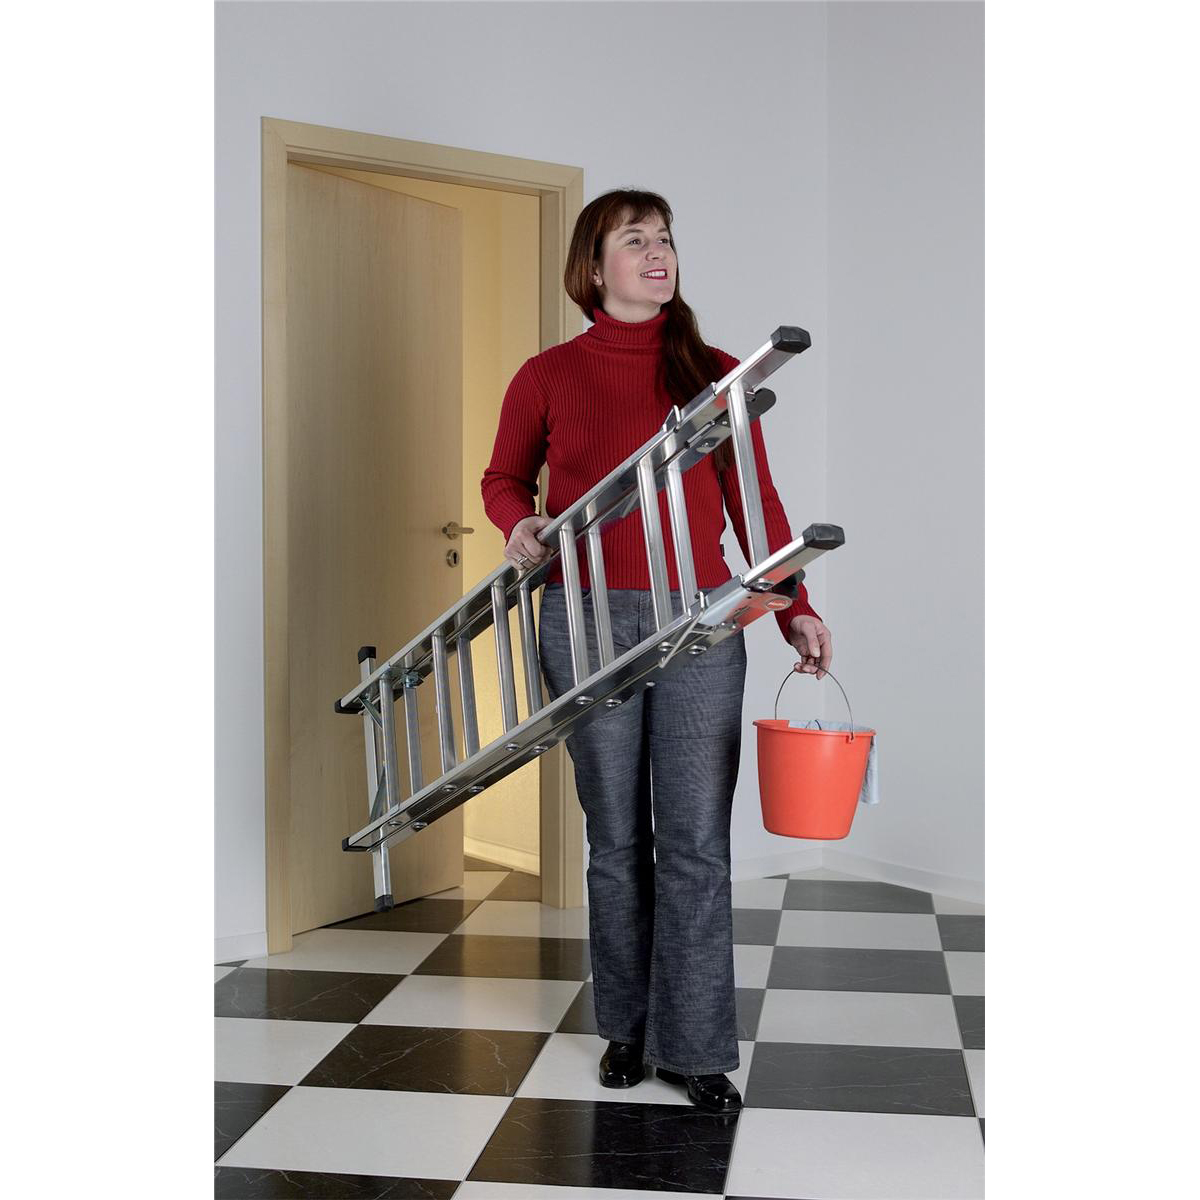 Convertible Household Ladder 3 Way 5 Tread Capacity 150kg 5.6kg Aluminium